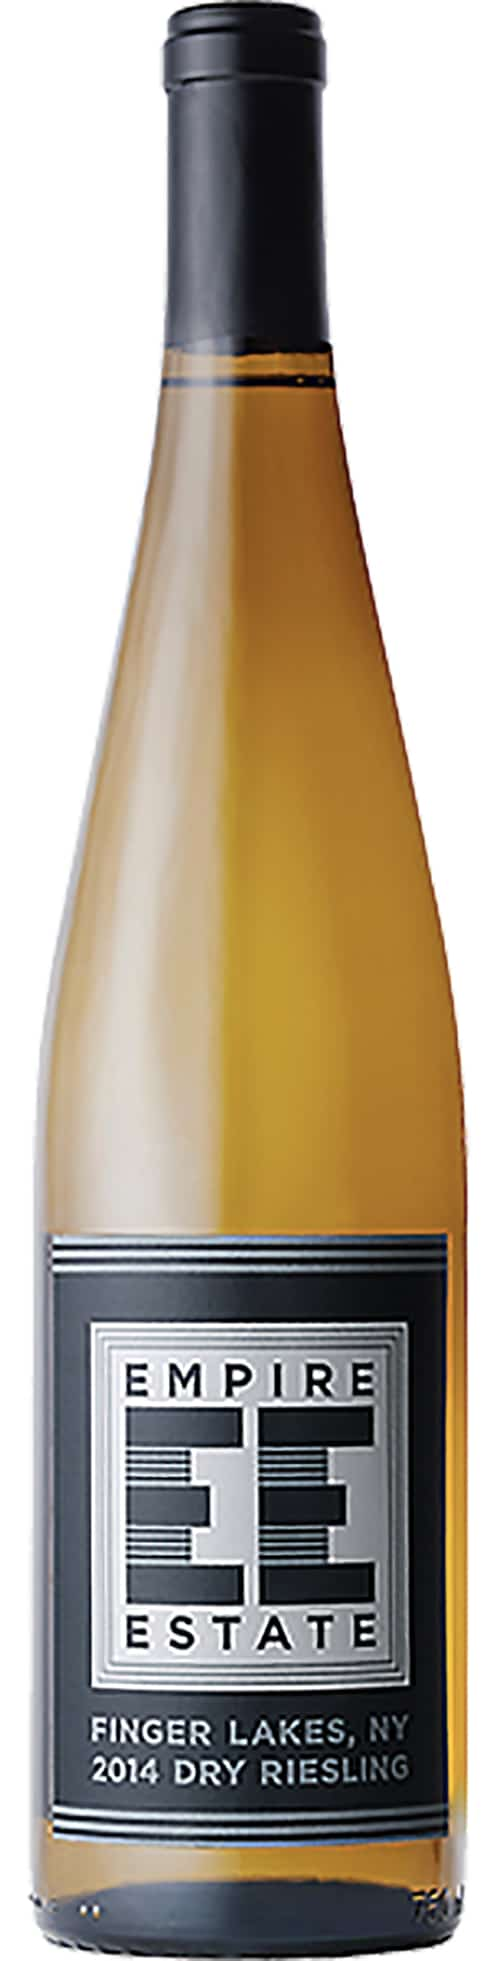 Empire Estate Riesling